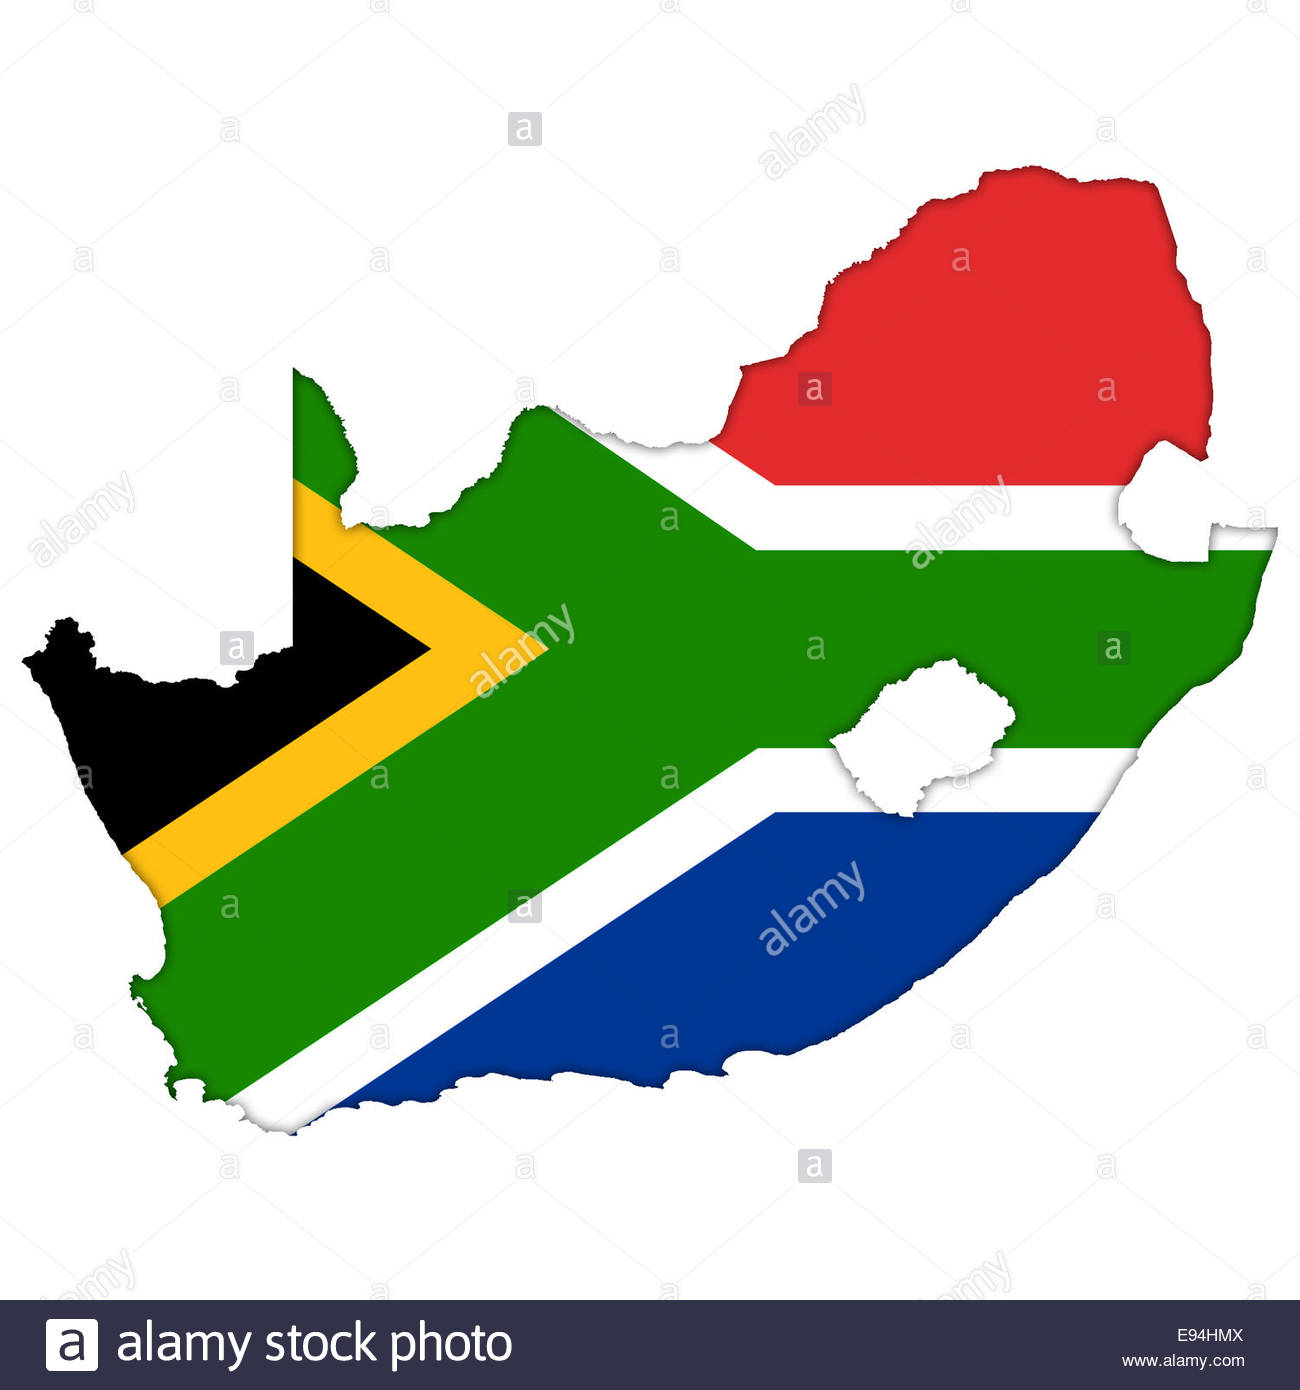 South Africa flag icon logo map - Stock Image